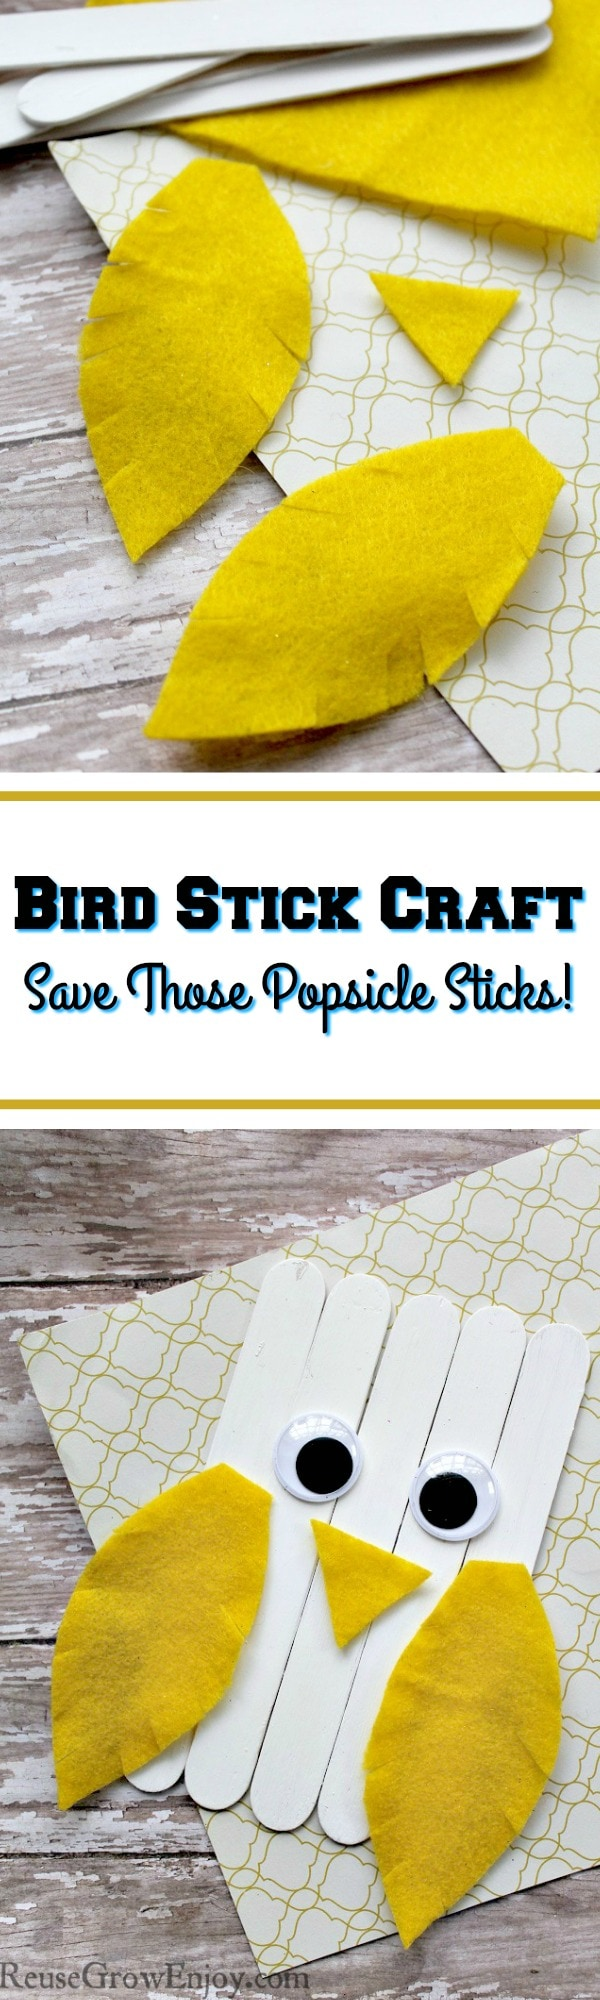 Check out this easy cute craft stick craft you can do with the kids. You can even reuse / upcycle popsicle sticks to make it!